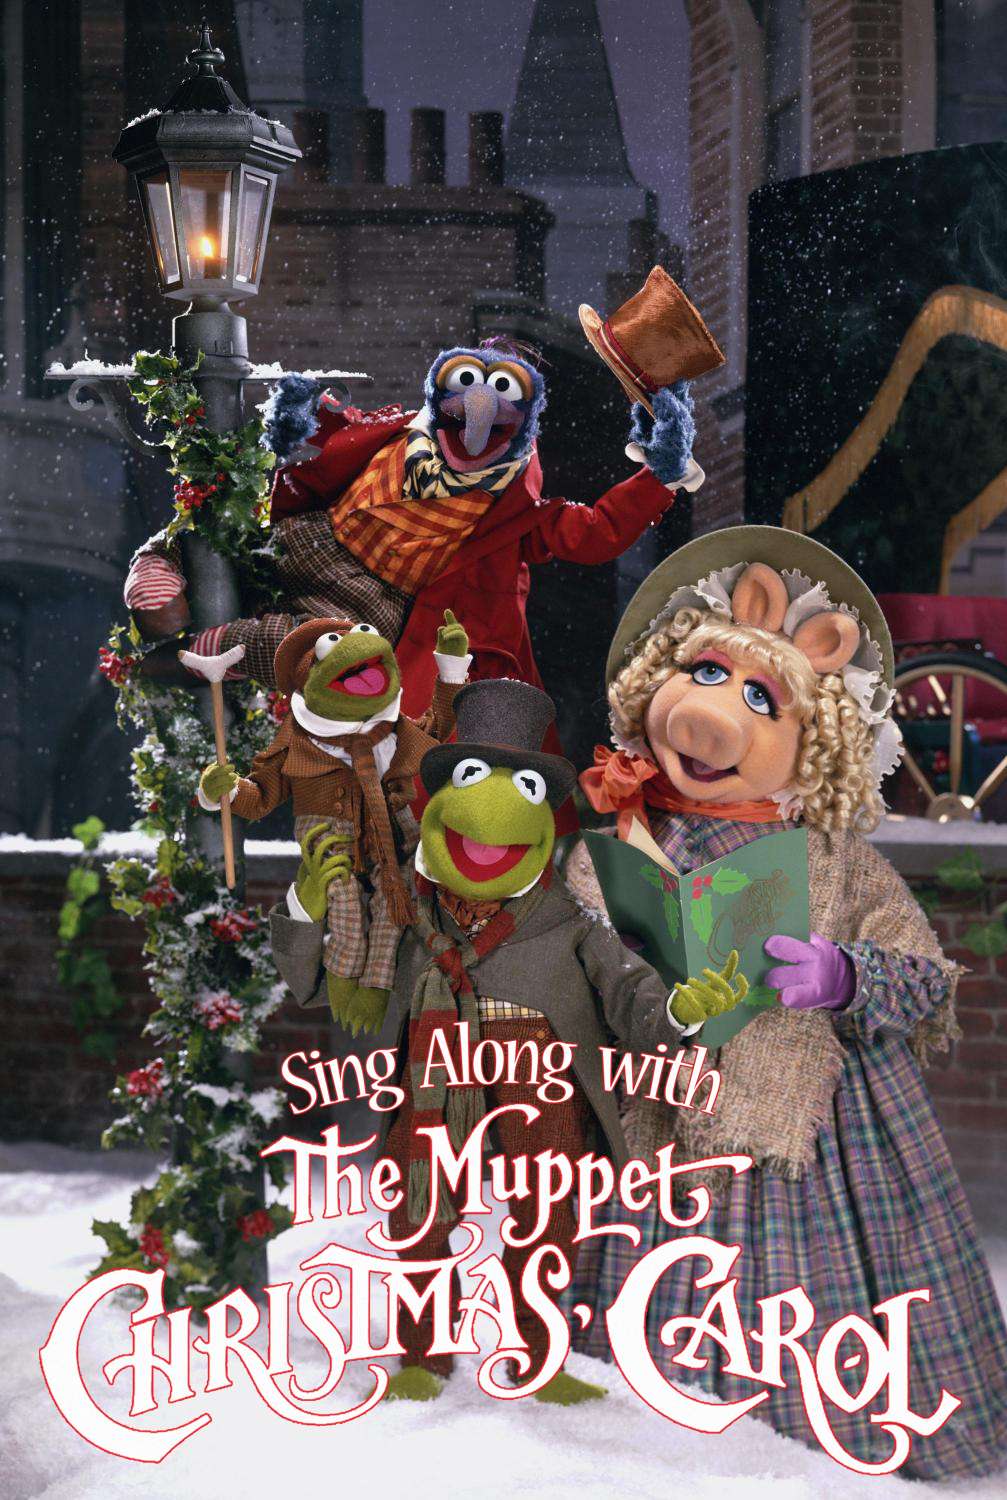 THE MUPPET CHRISTMAS CAROL • Sing Along